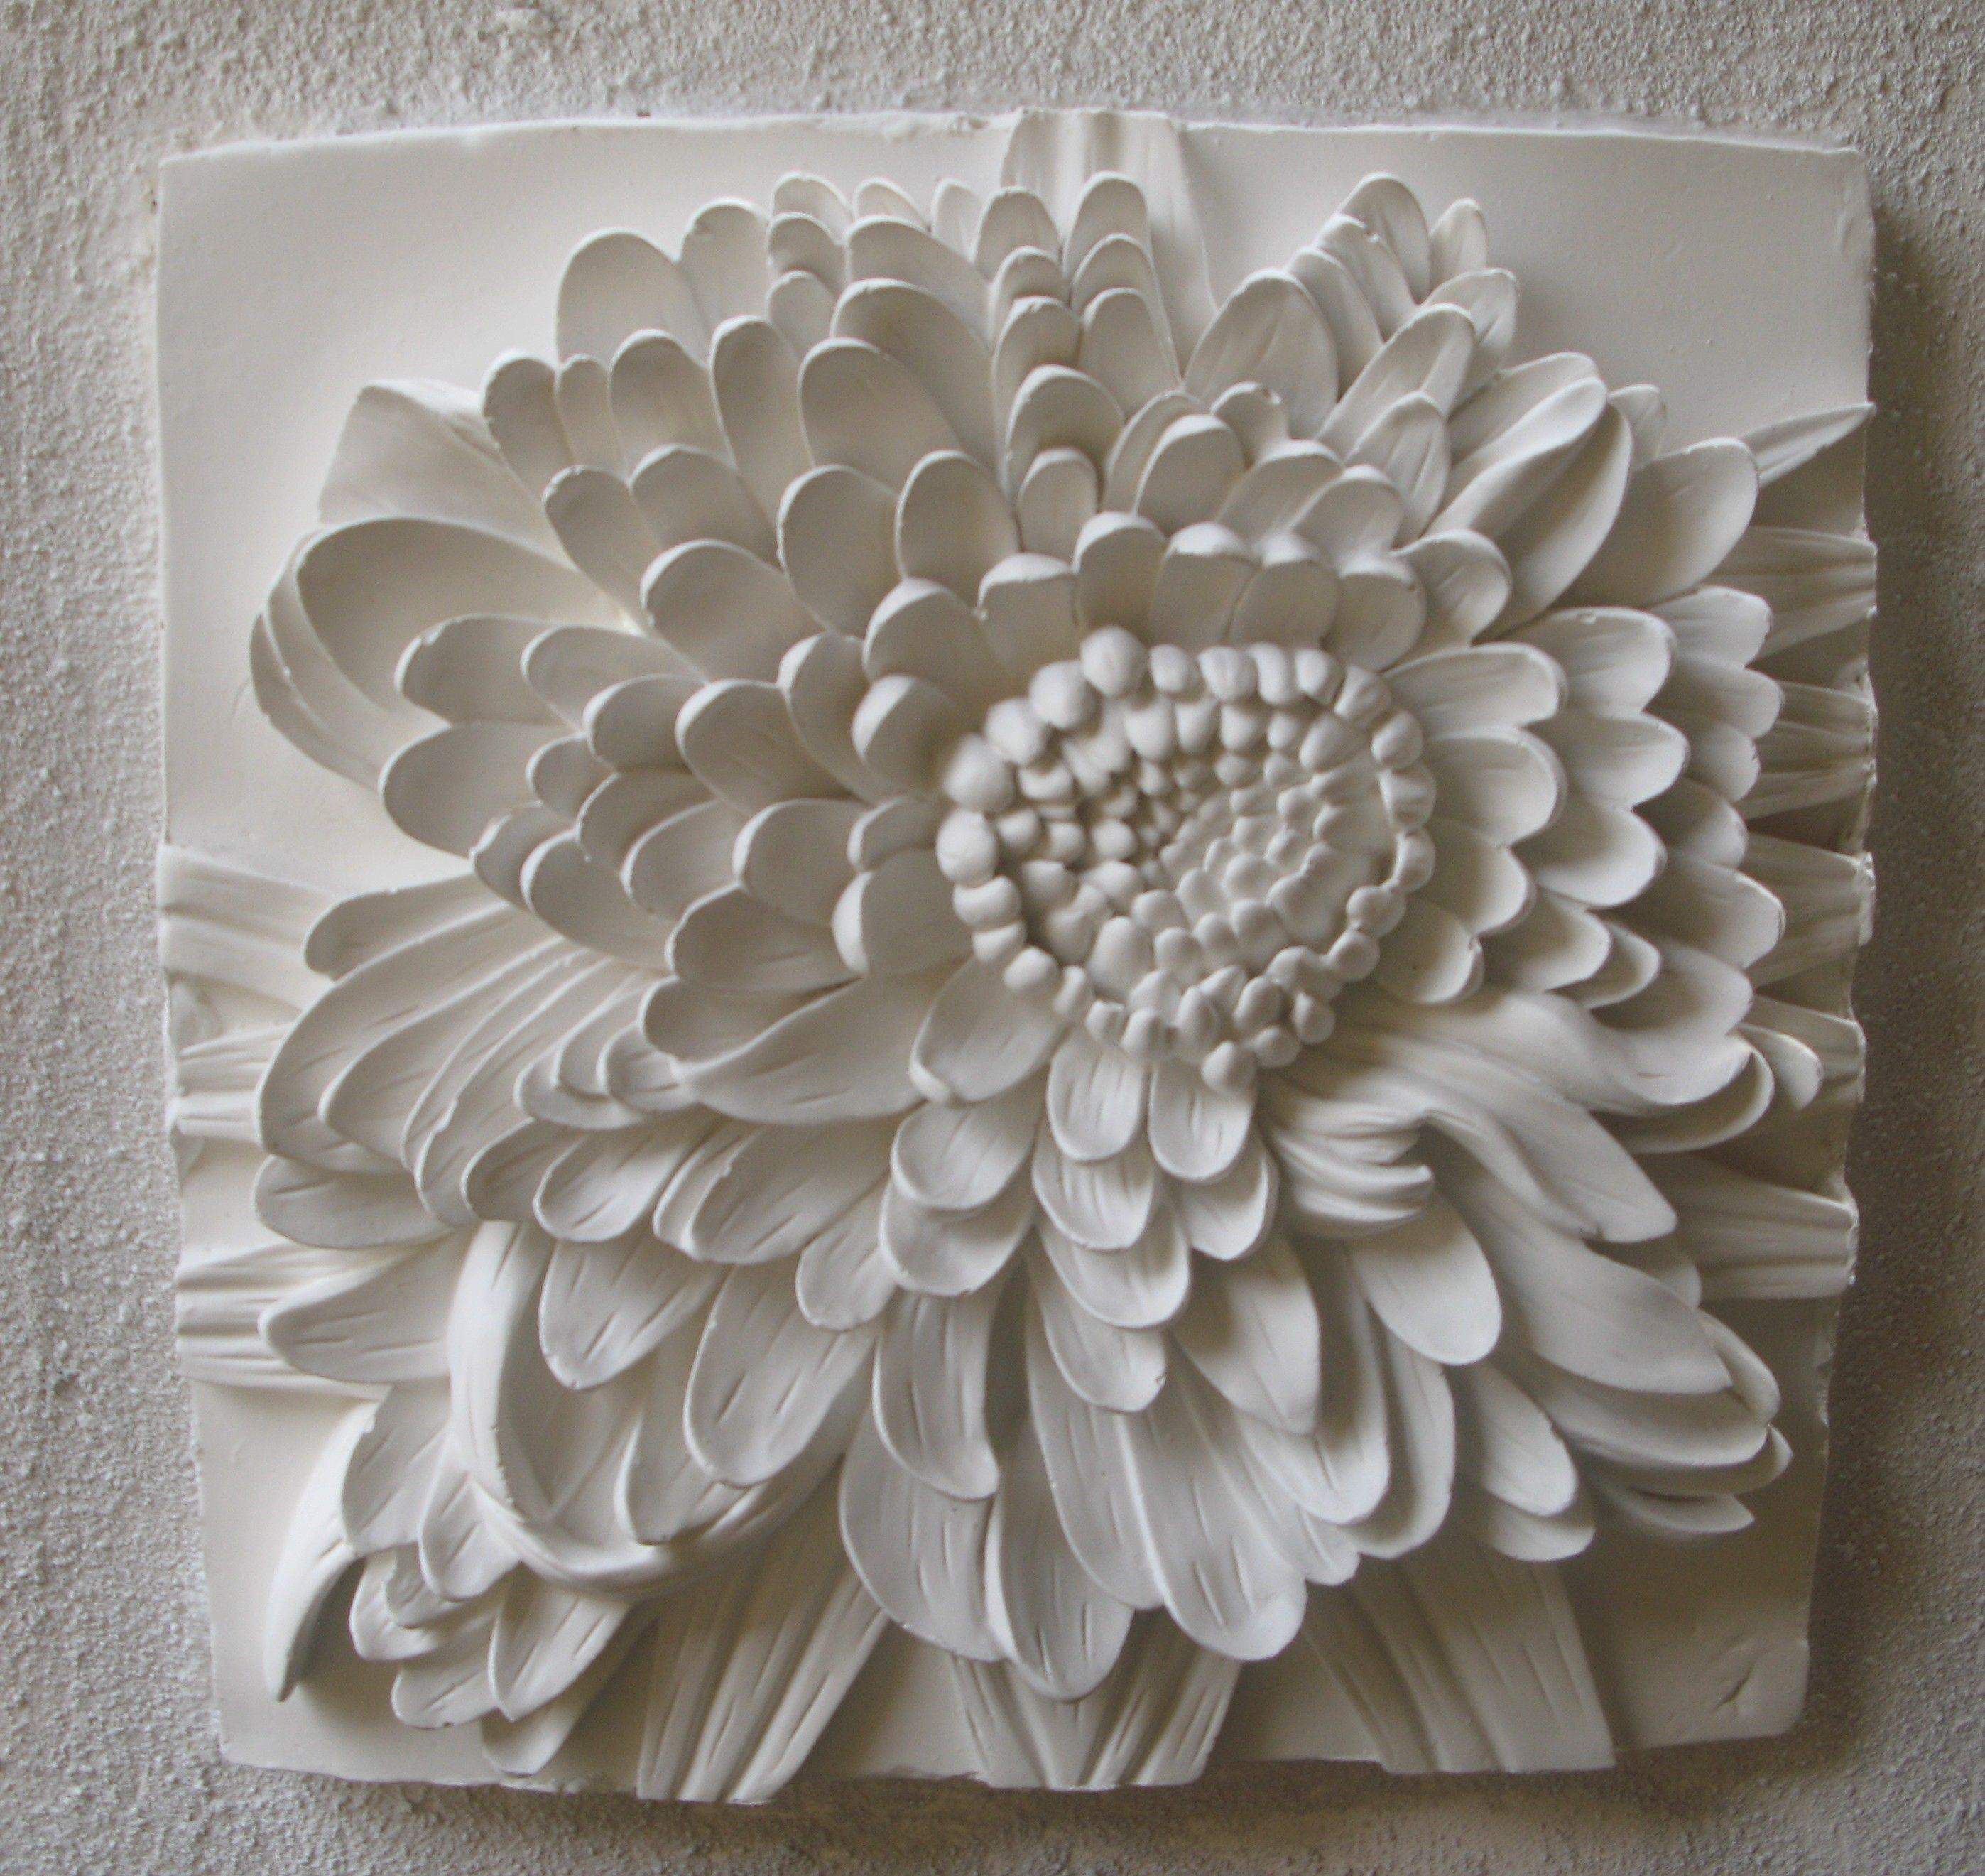 Chrysanyhemum 3d Sculptural Art On Canvas Plaster Art Drywall Art Ceramic Flowers